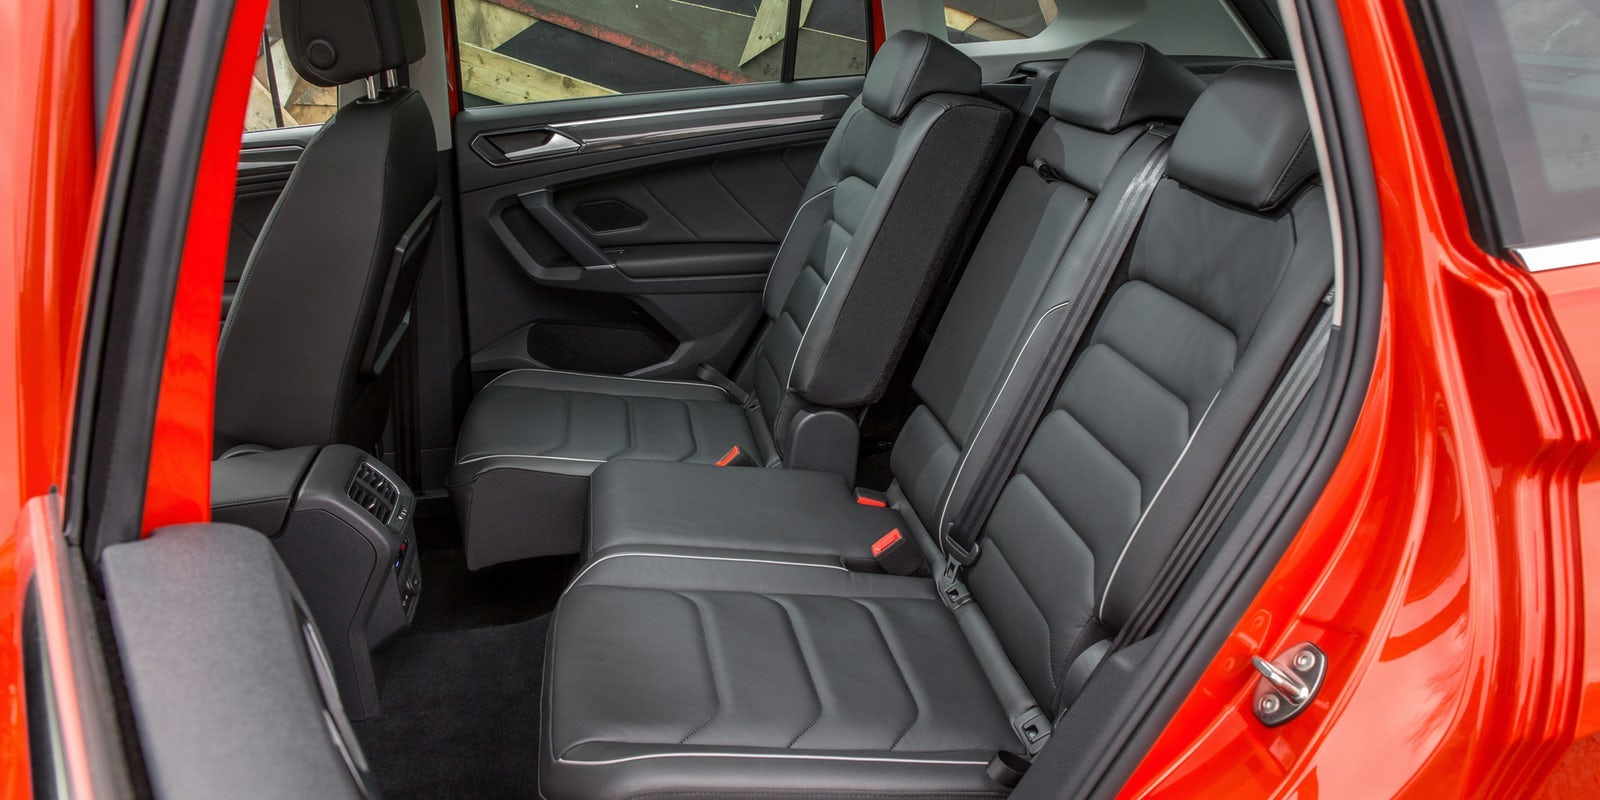 Volkswagen Tiguan Boot Space Amp Dimensions Carwow